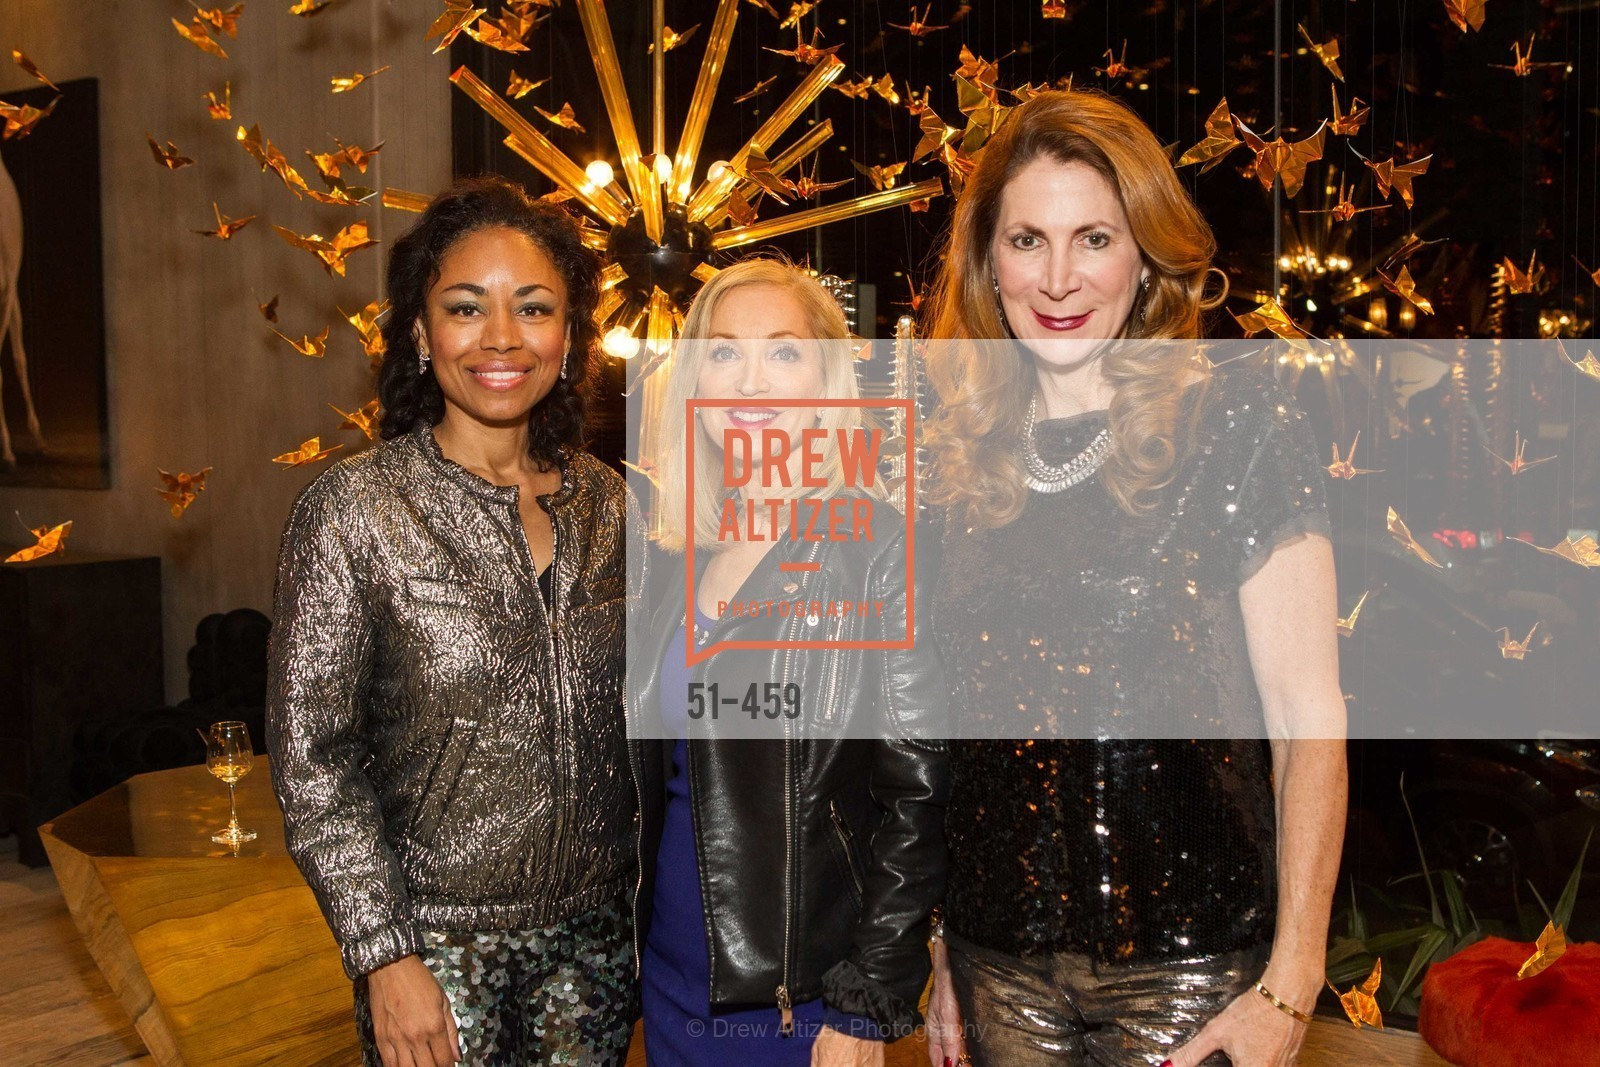 Tanya Powell, Shelley Gordon, Patricia Ferrin Loucks, 2014 SAN FRANCISCO BALLET OPENING NIGHT GALA Patron and Sponsor Reception, US. US, January 14th, 2014,Drew Altizer, Drew Altizer Photography, full-service event agency, private events, San Francisco photographer, photographer California